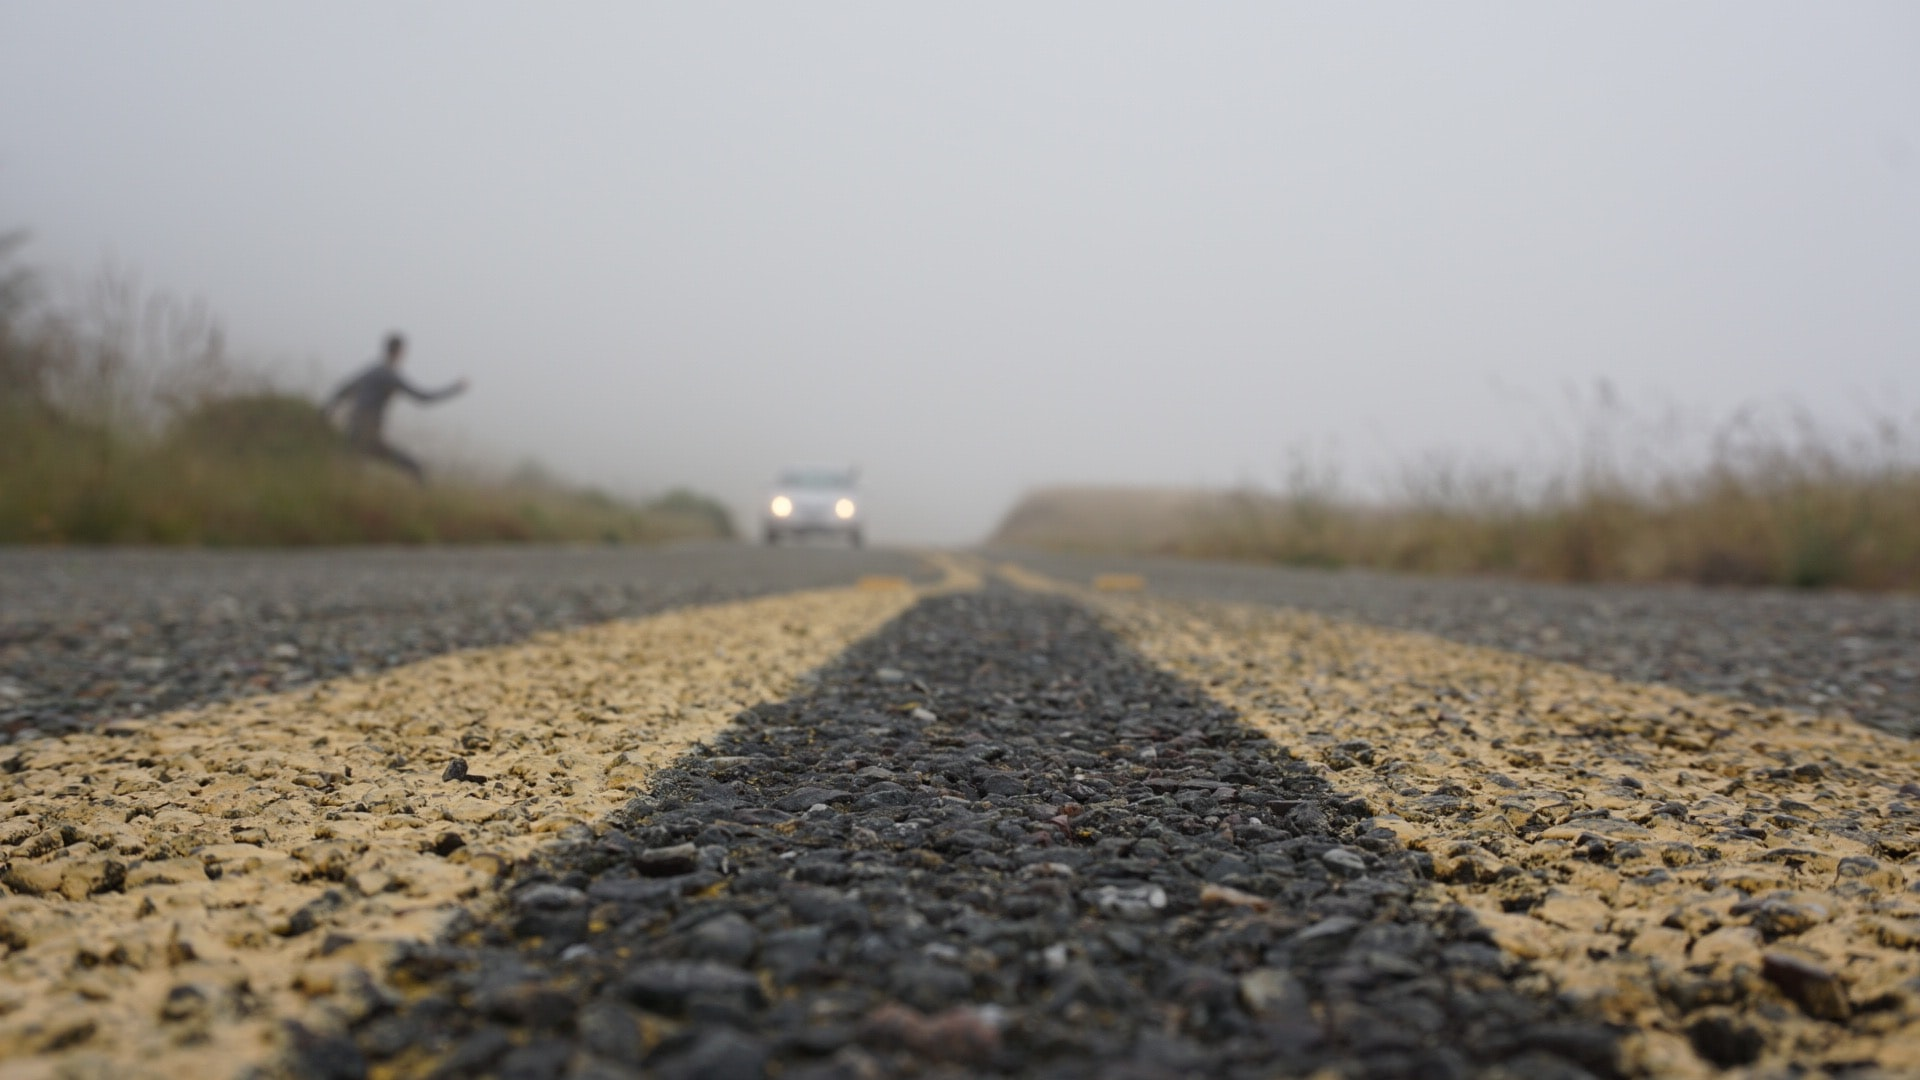 Road level view of a person crossing the foggy road.